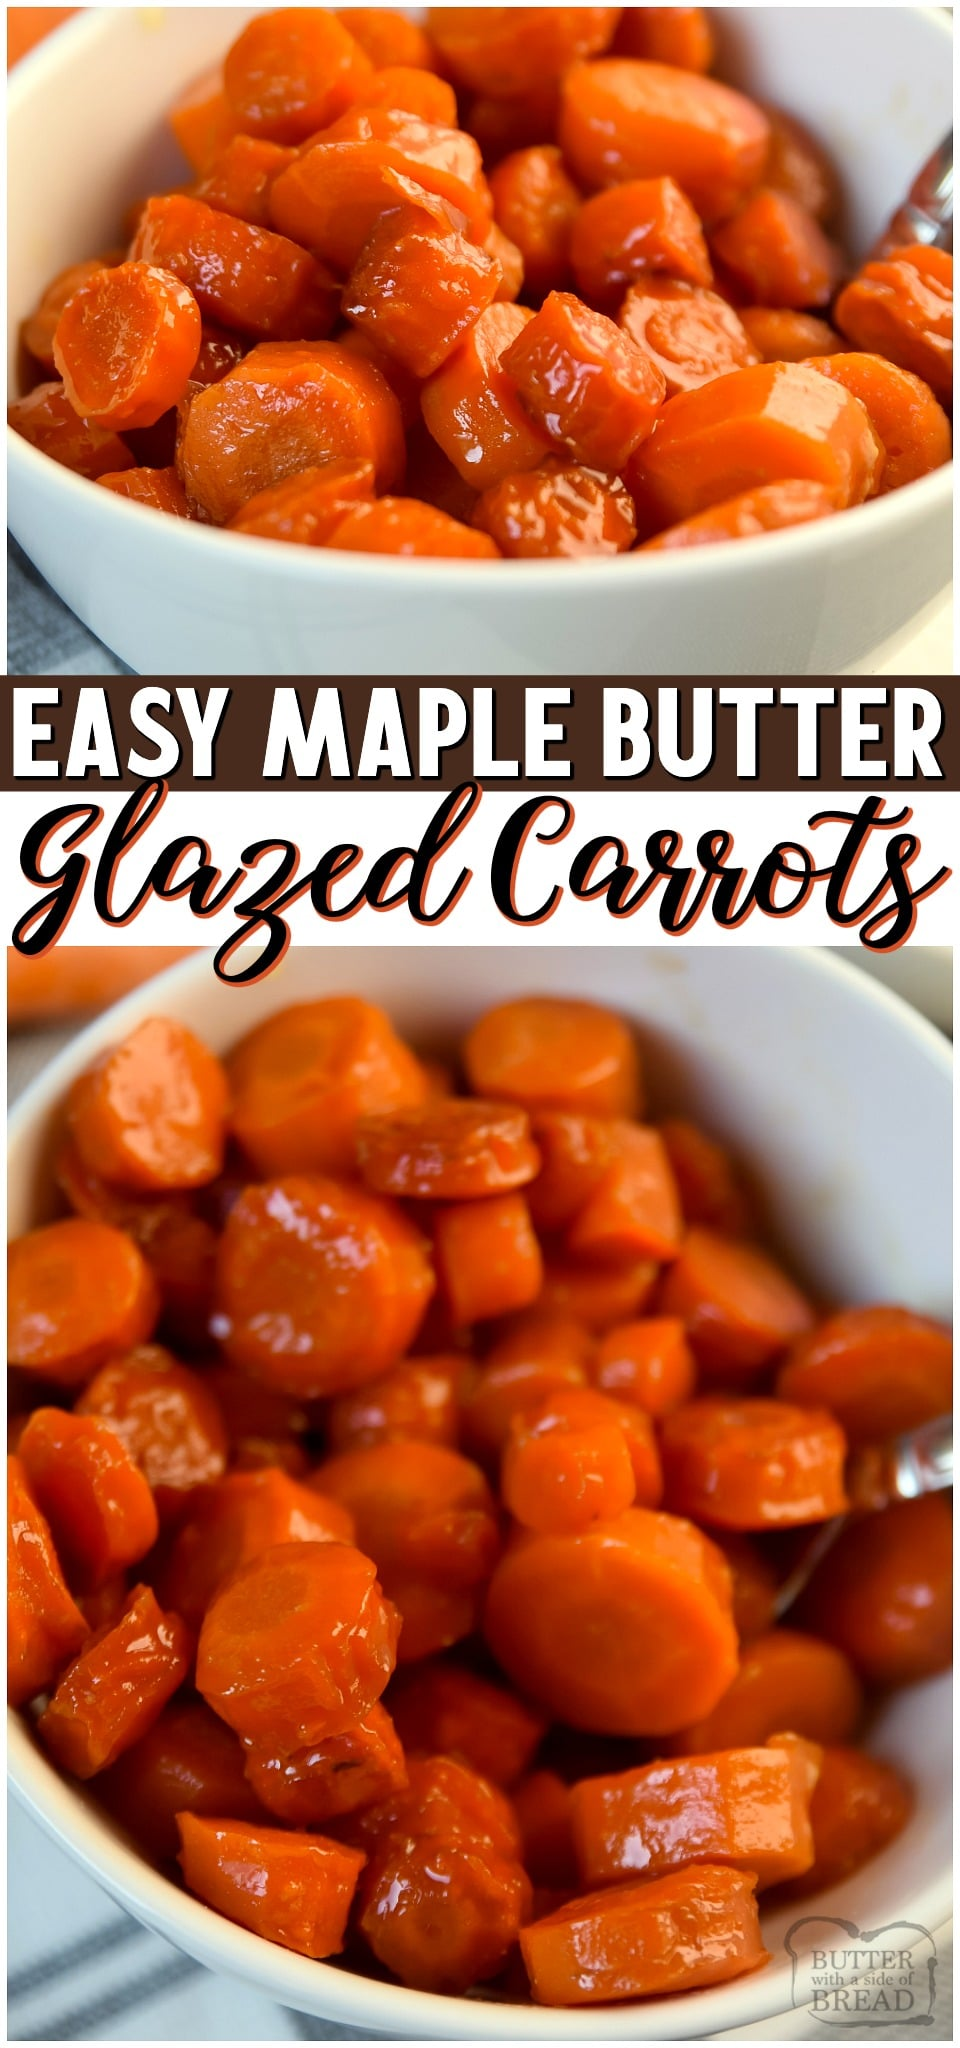 Maple Glazed Carrots~ tender, sweet & the perfect easy vegetable side dish. Glazed Carrots simmered in a sauce of maple syrup and butter & are so simple to make!